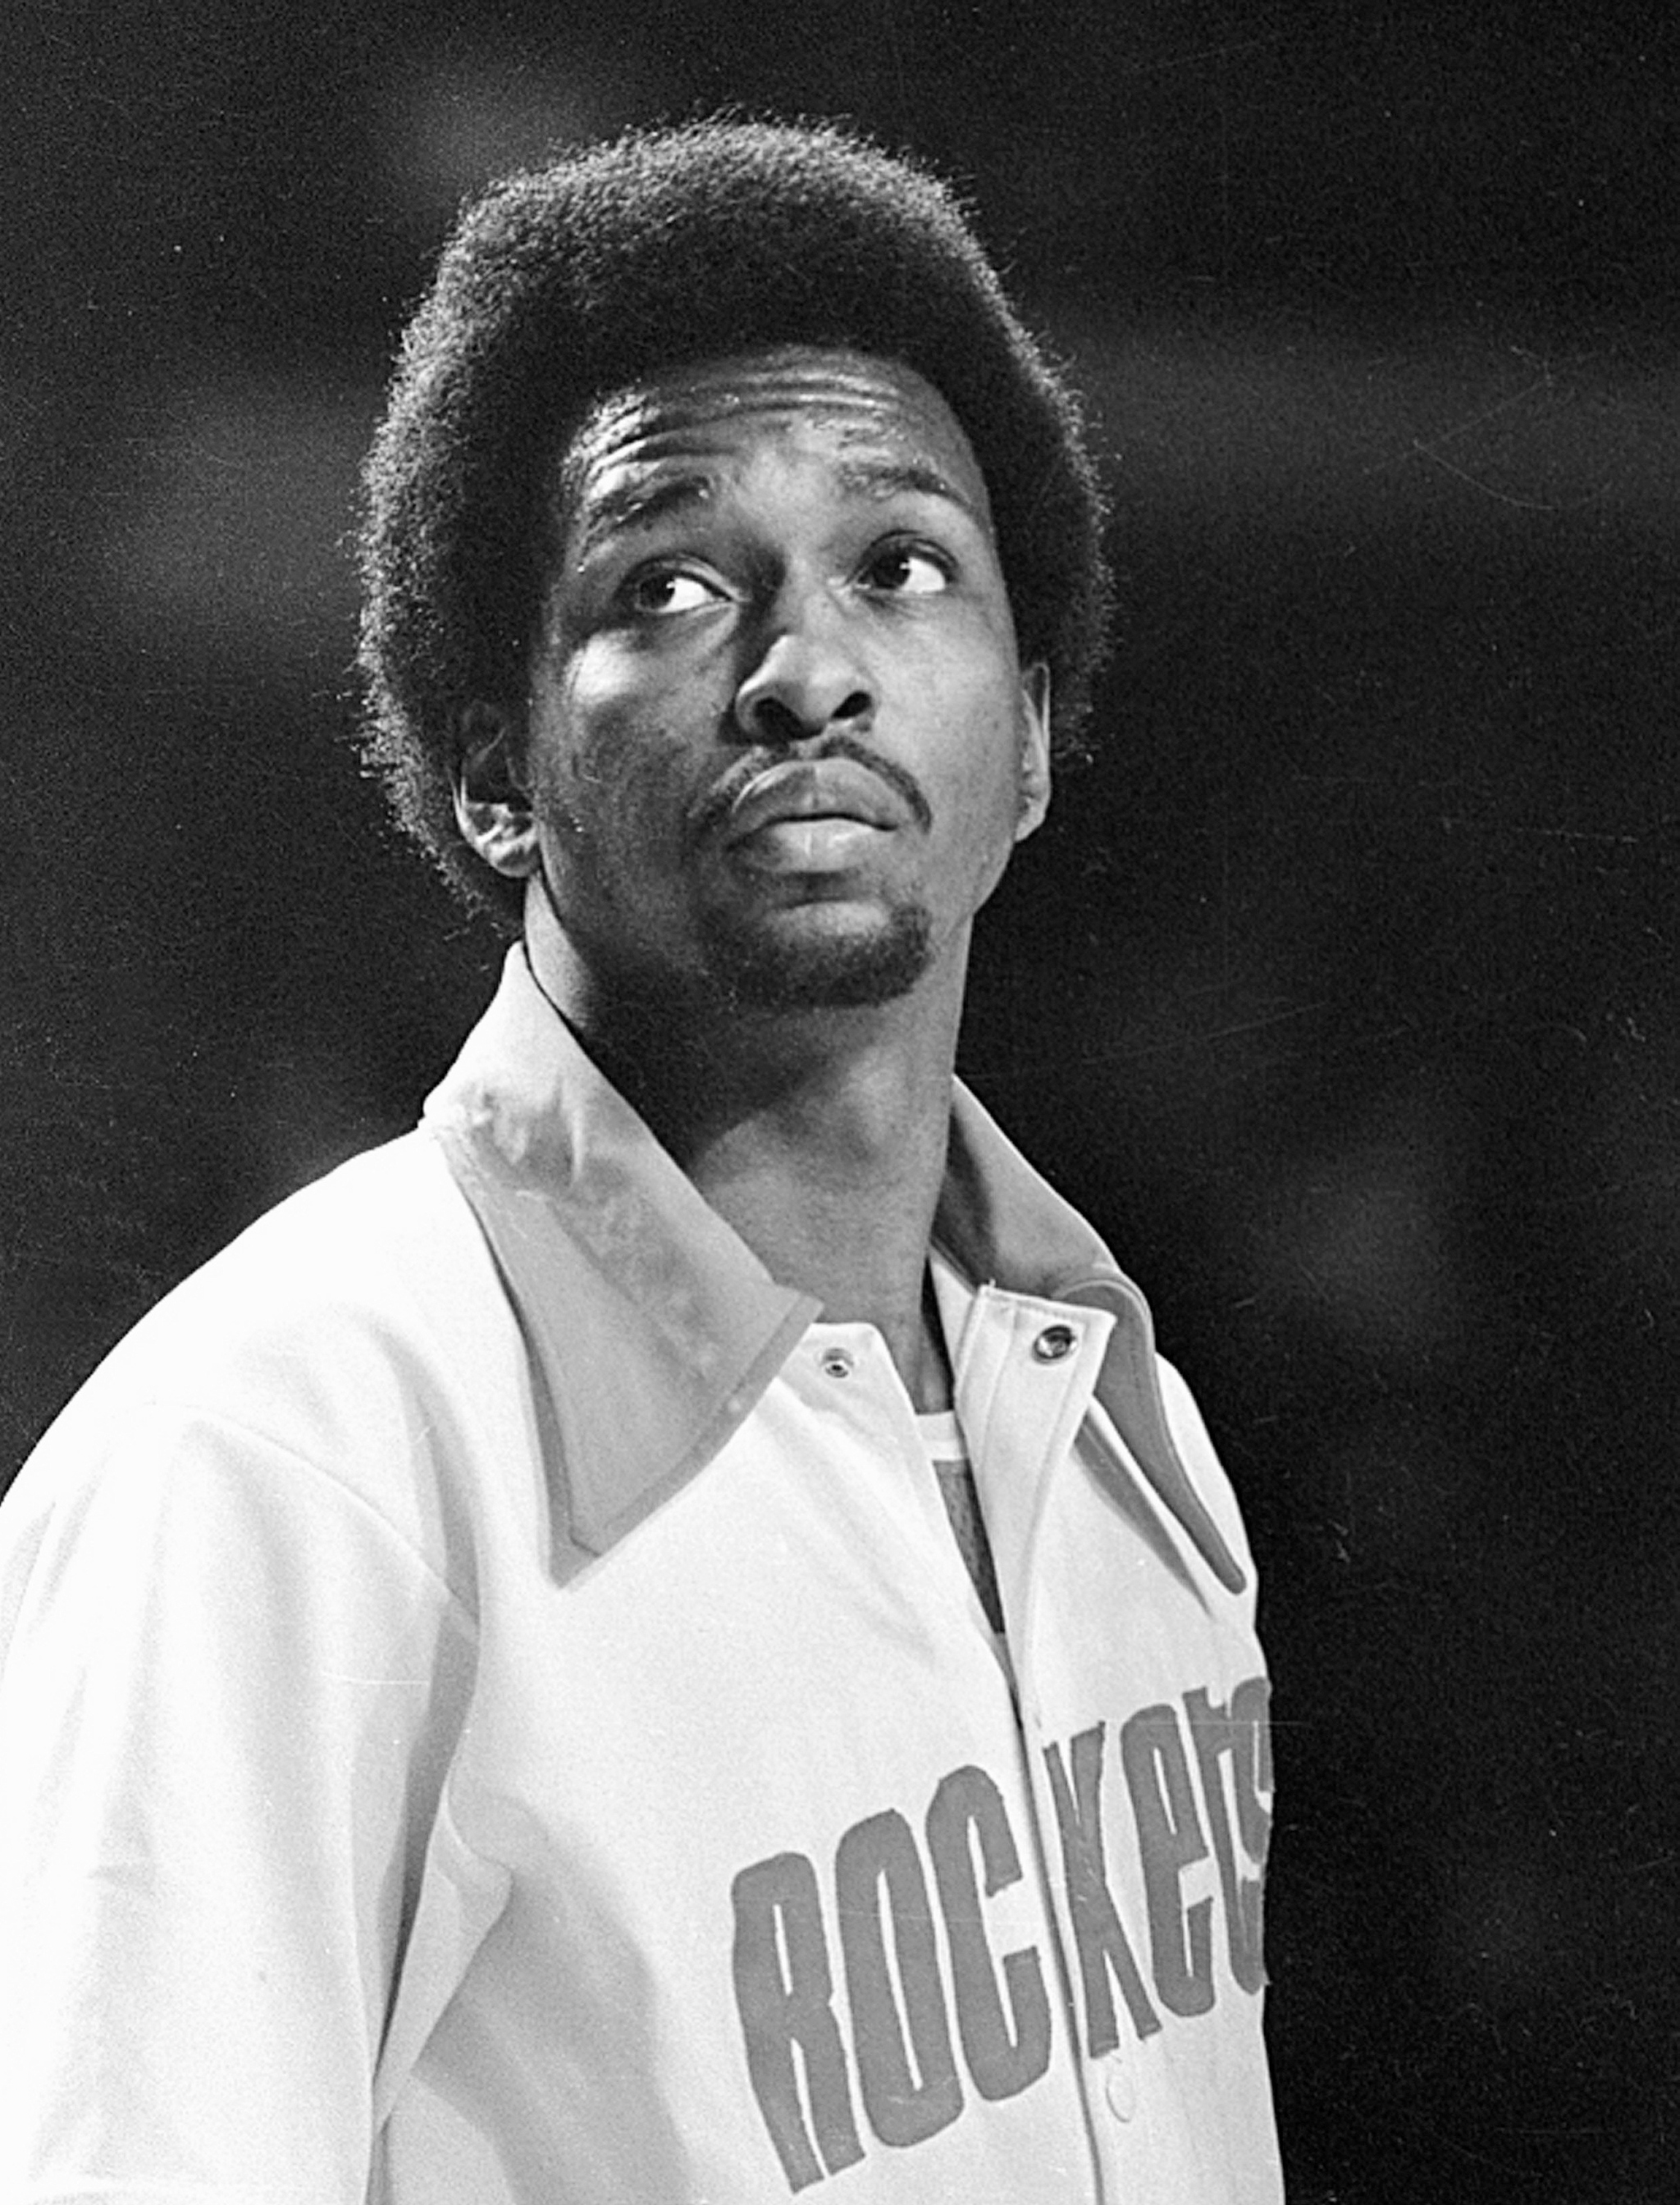 Moses Malone: A Hall of Fame career - Moses Malone: 1955 ...